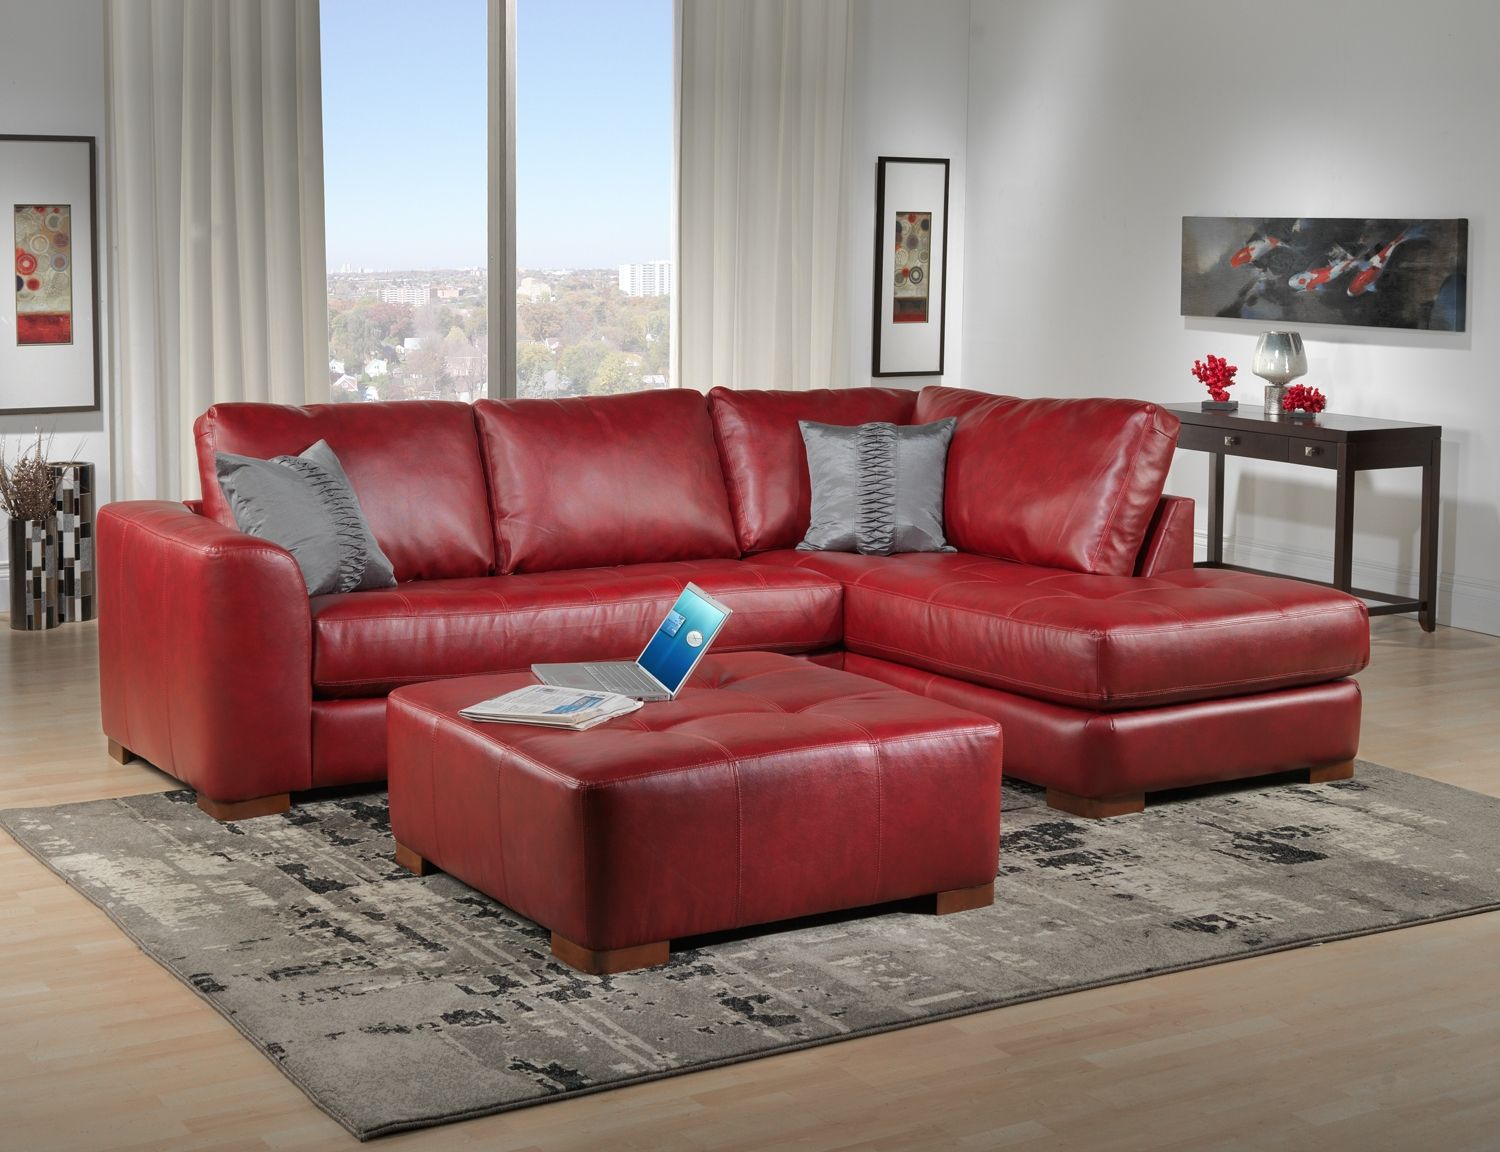 I want a red leather couch. : red leather sofa sectional - Sectionals, Sofas & Couches